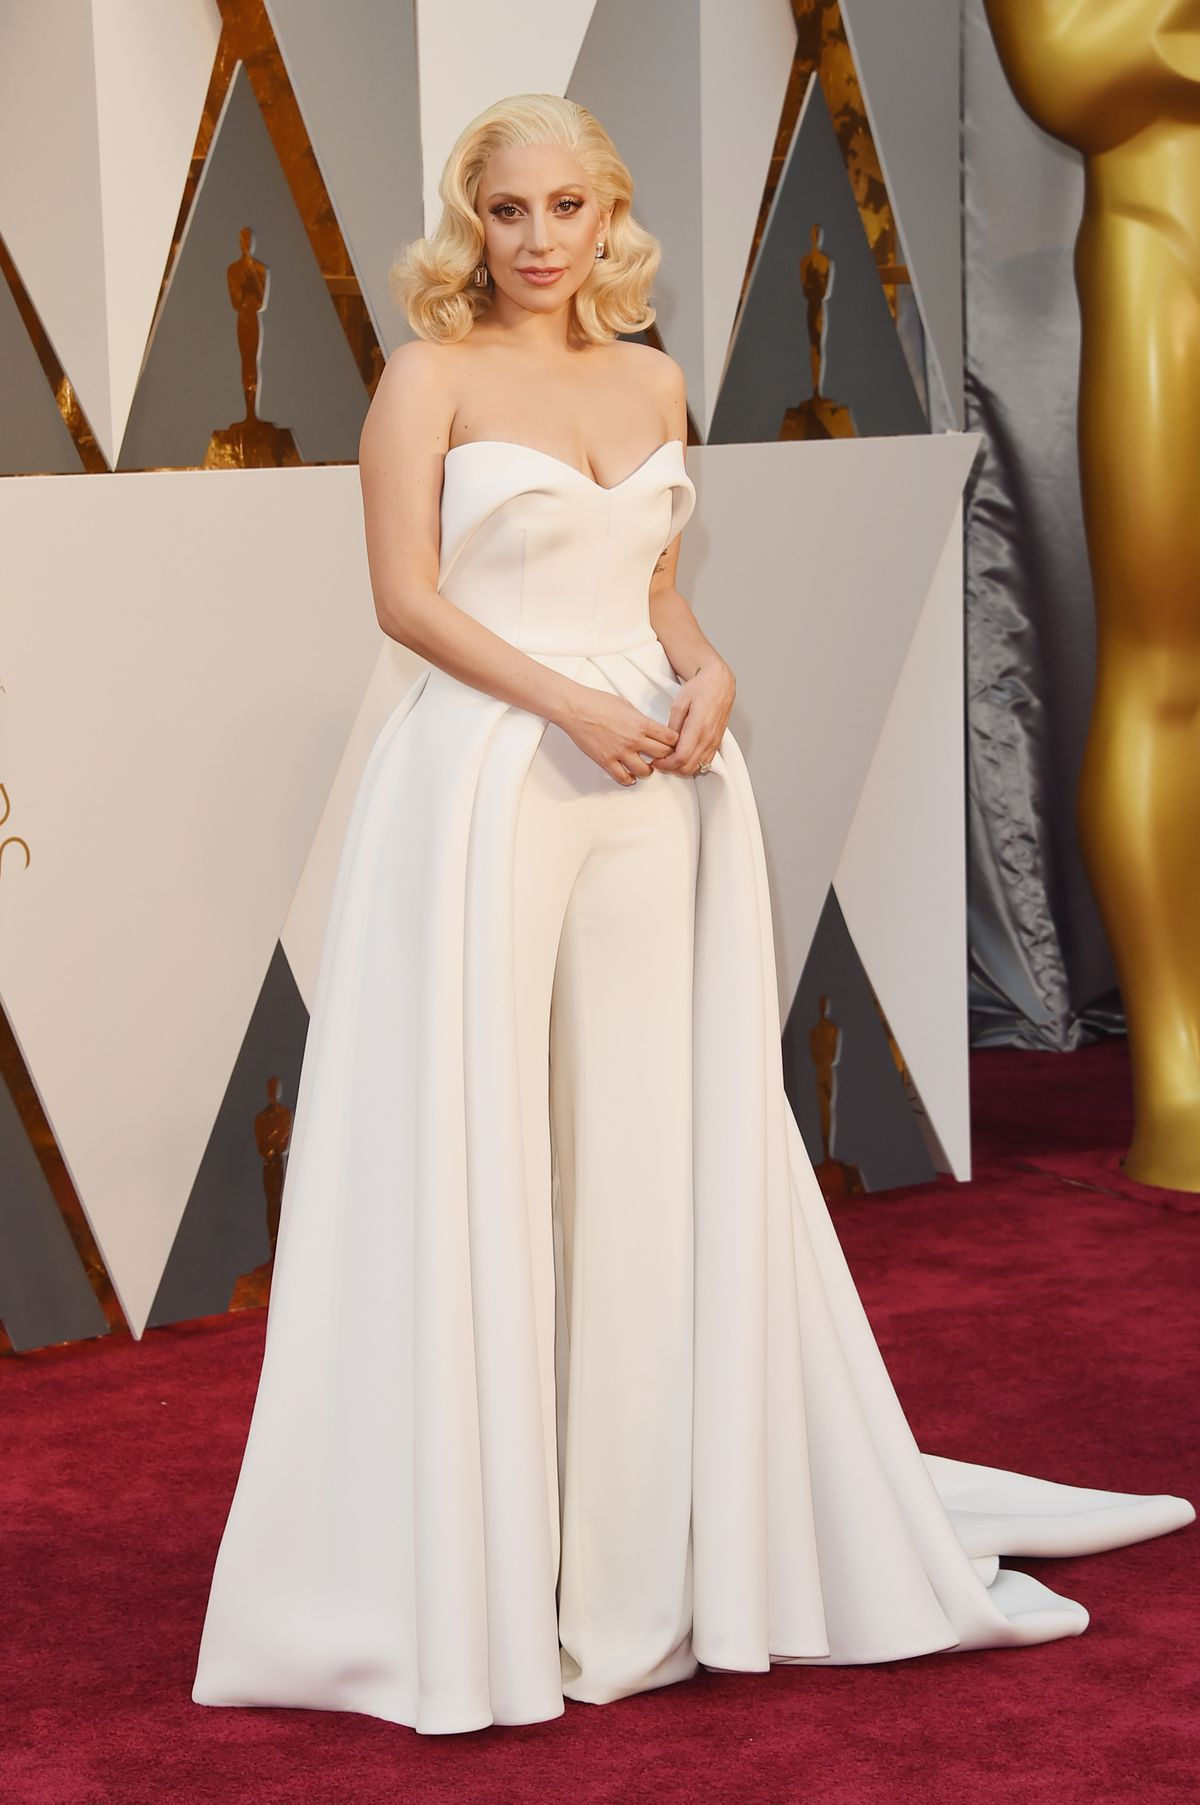 Oscars Red Carpet: See What Jennifer Lawrence, Brie Larson, and Everyone Else Is Wearing